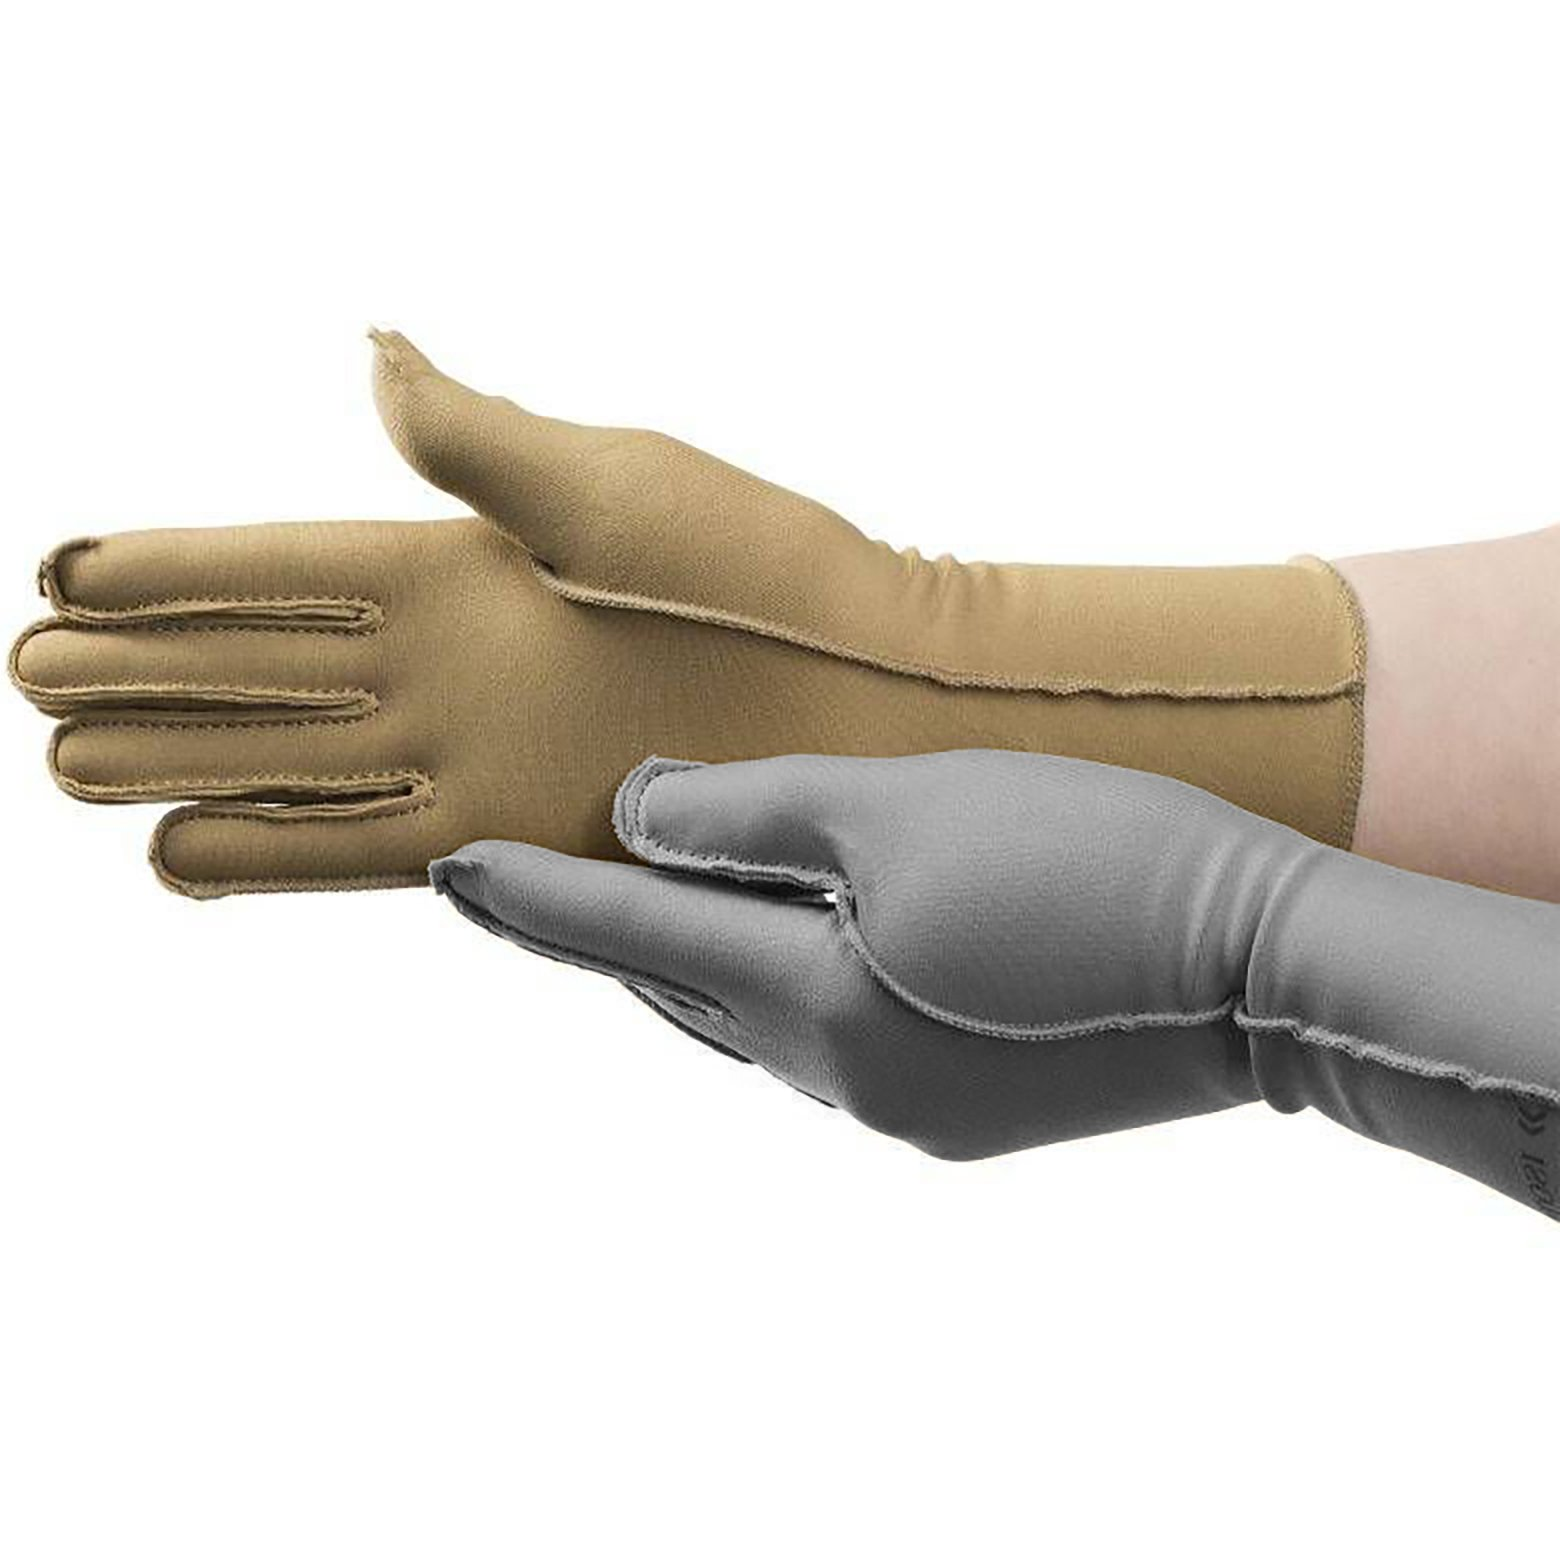 Isotoner Therapeutic Glove, Closed Finger Compression Glove, 23-32 mmHg, Left Hand, Large